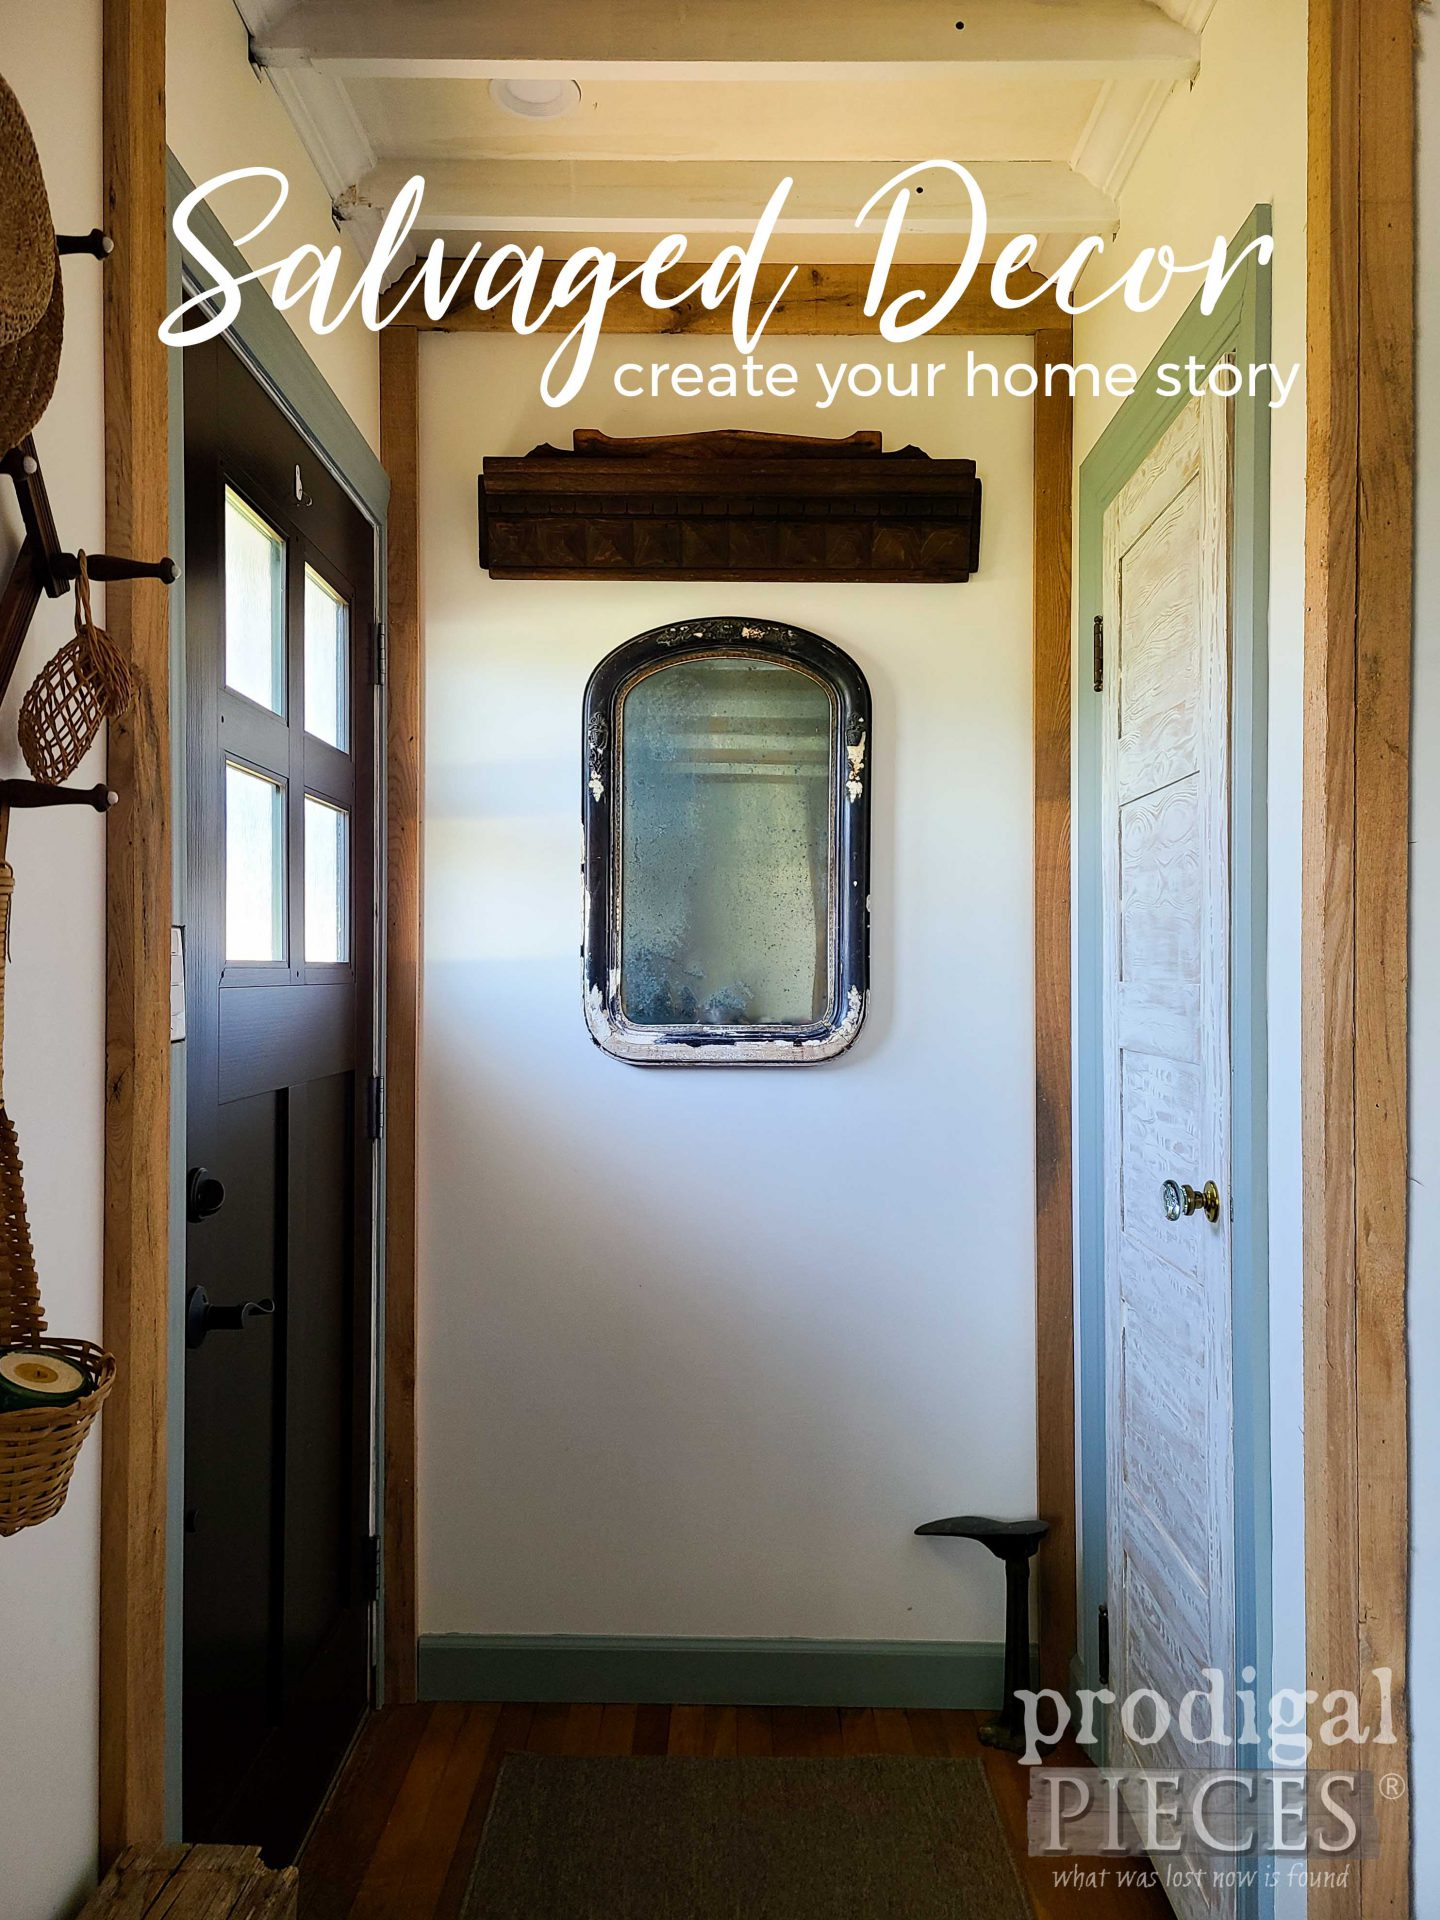 DIY Savaged Decor with Antique Finds by Larissa of Prodigal Pieces | Create your own home story | prodigalpieces.com #prodigalpieces #home #homedecor